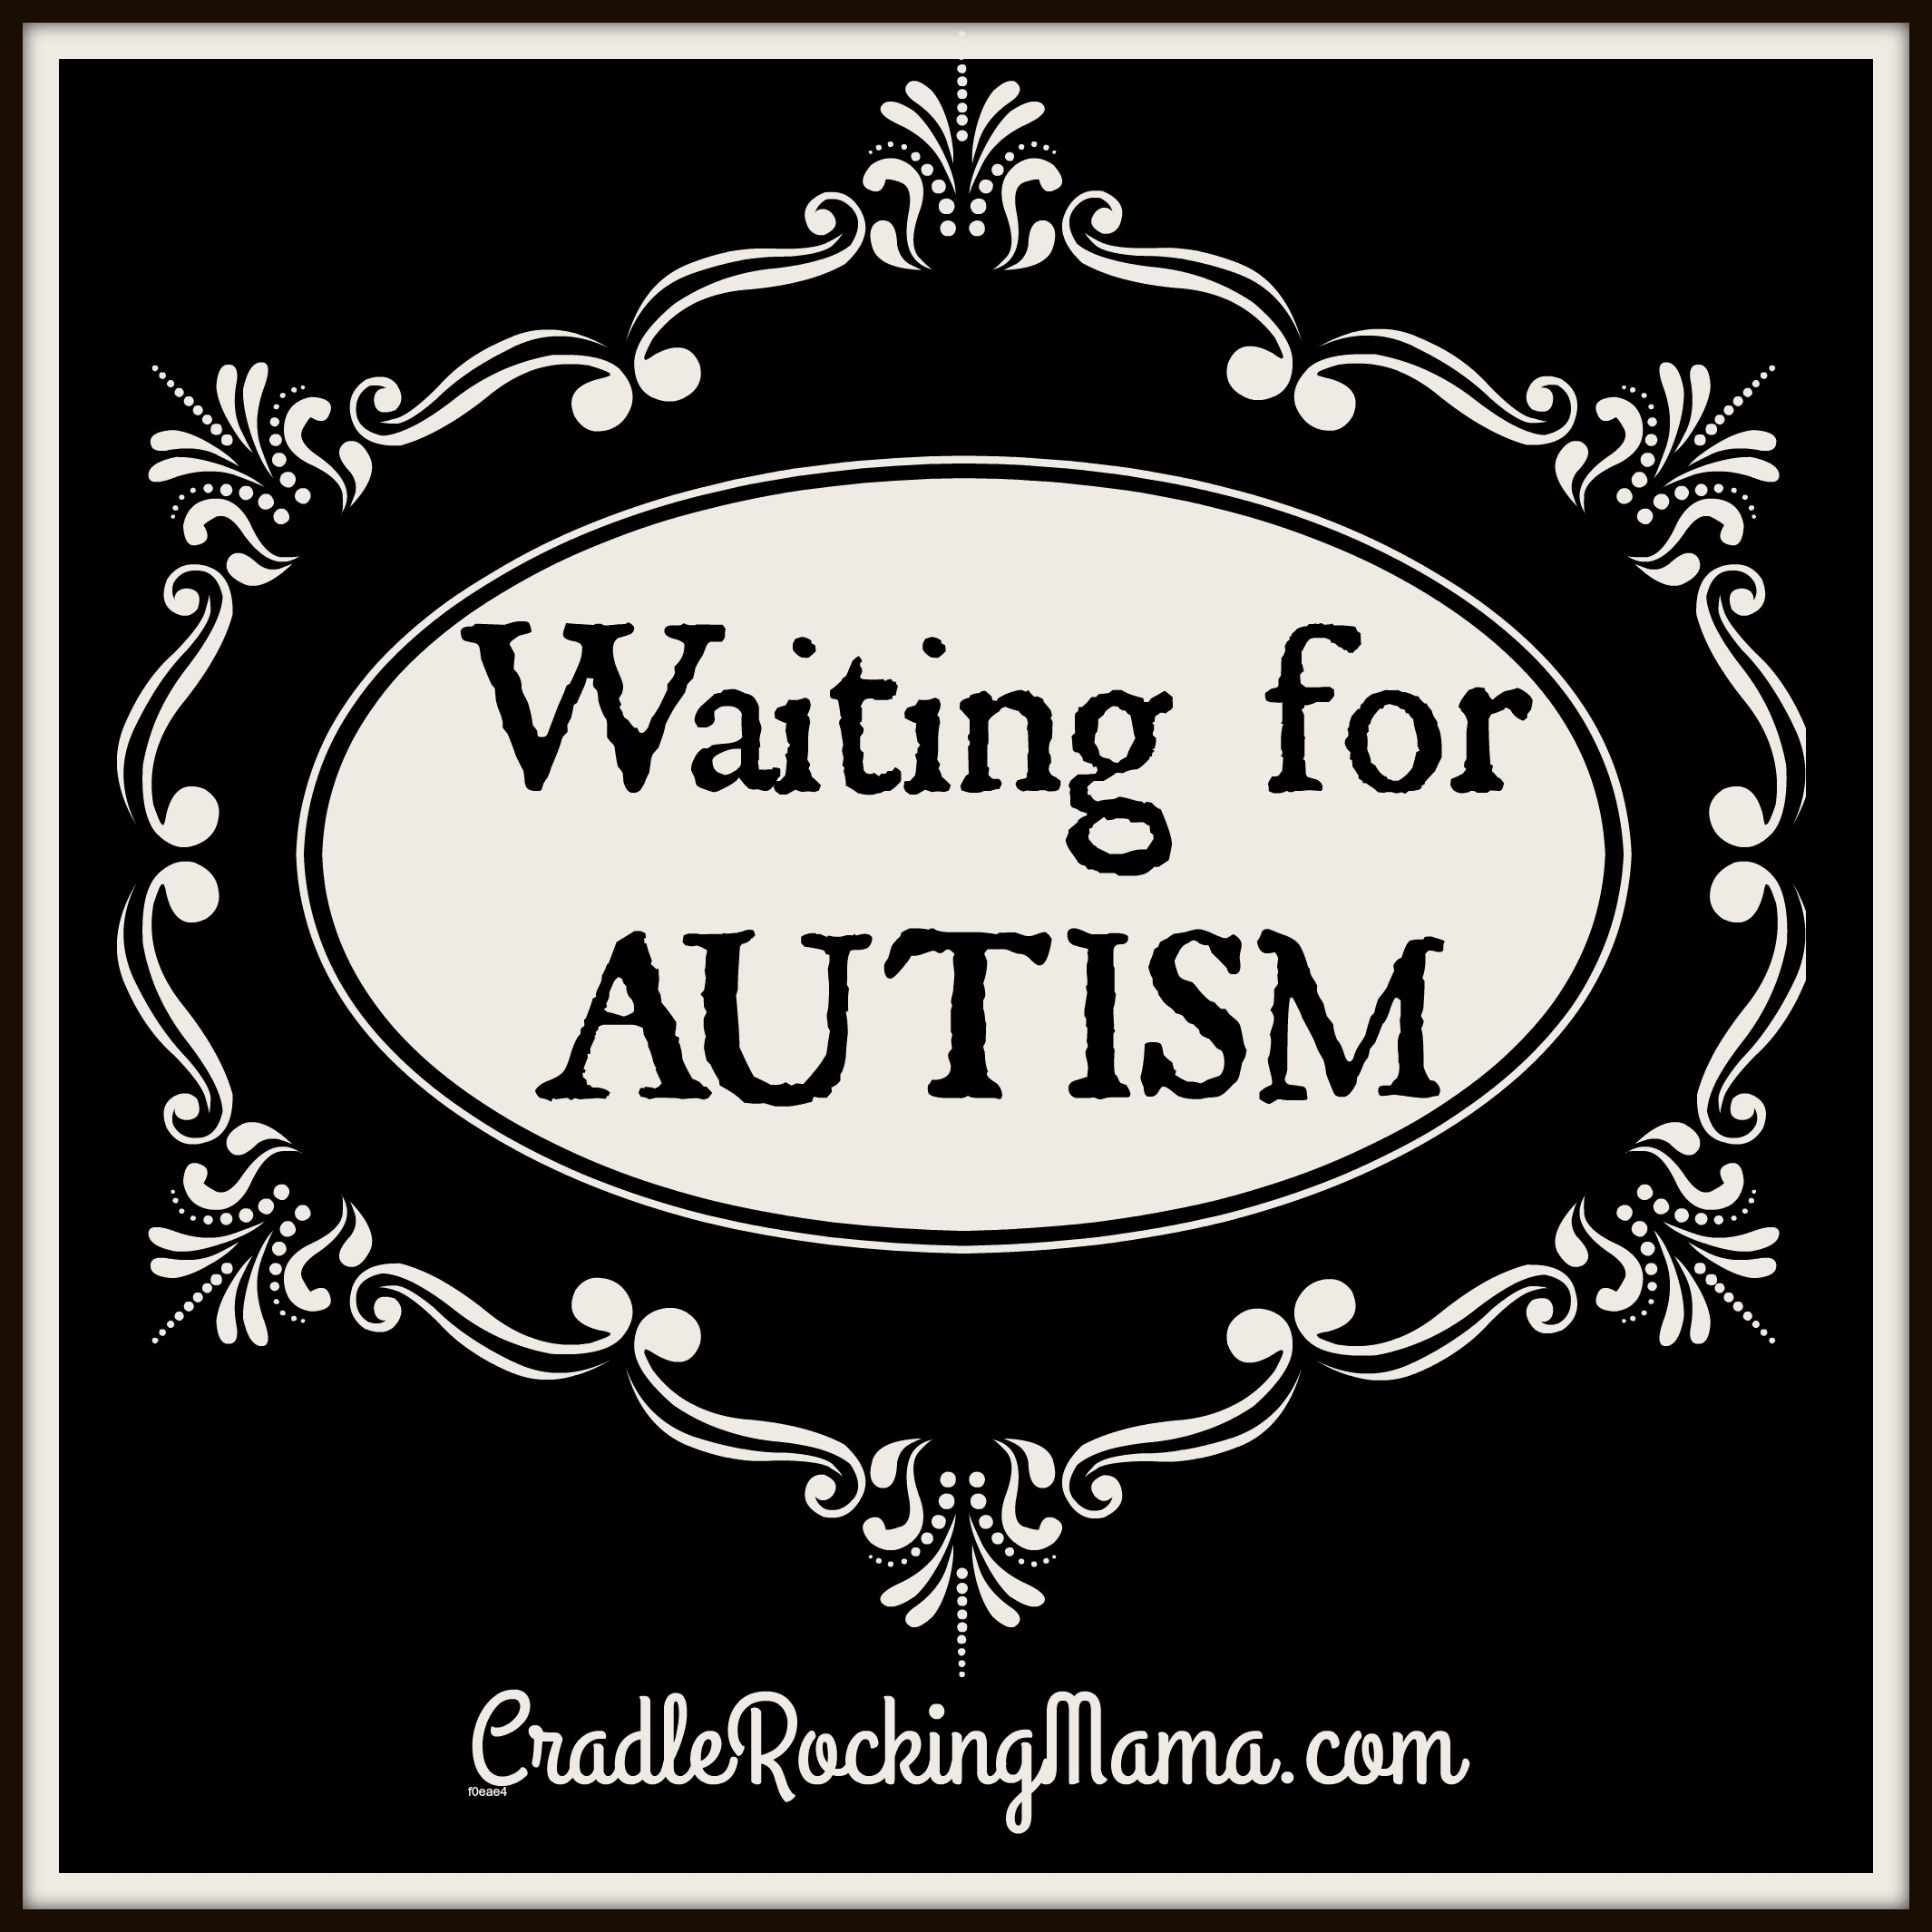 Waiting for Autism CradleRockingMama.com